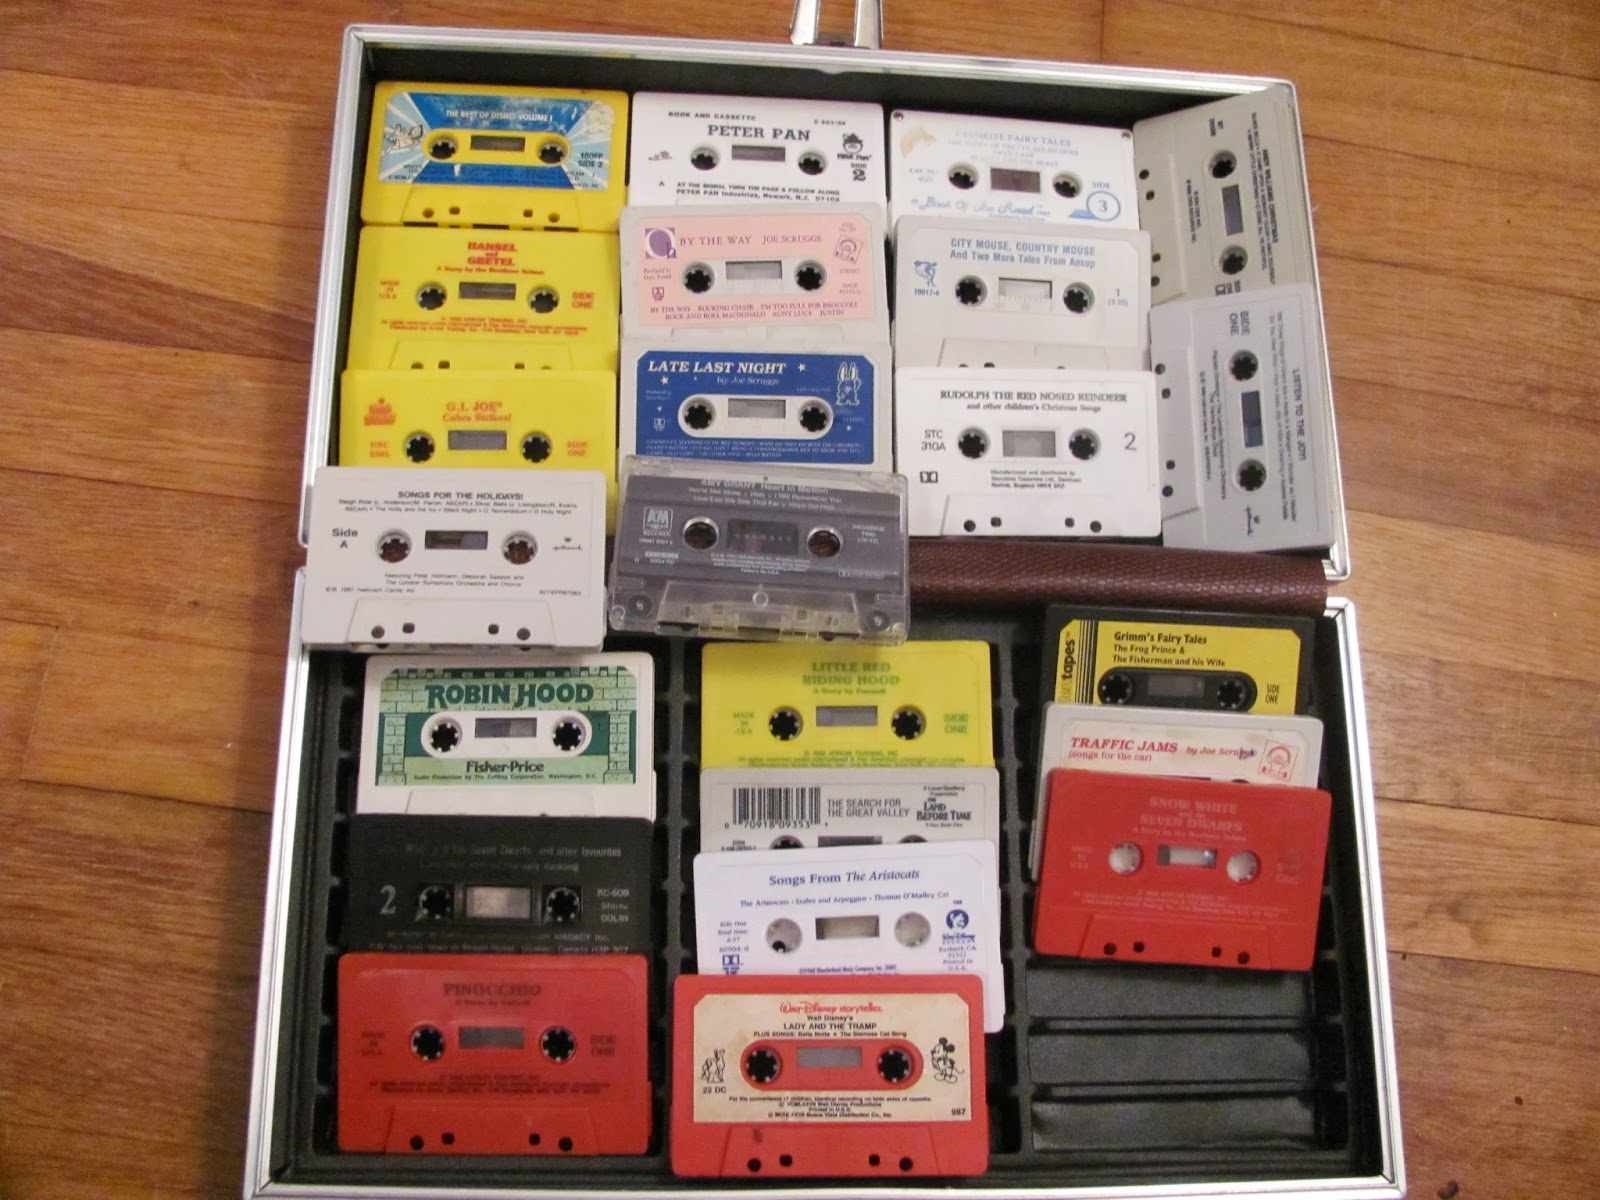 A view of a full case of children's music and story tapes